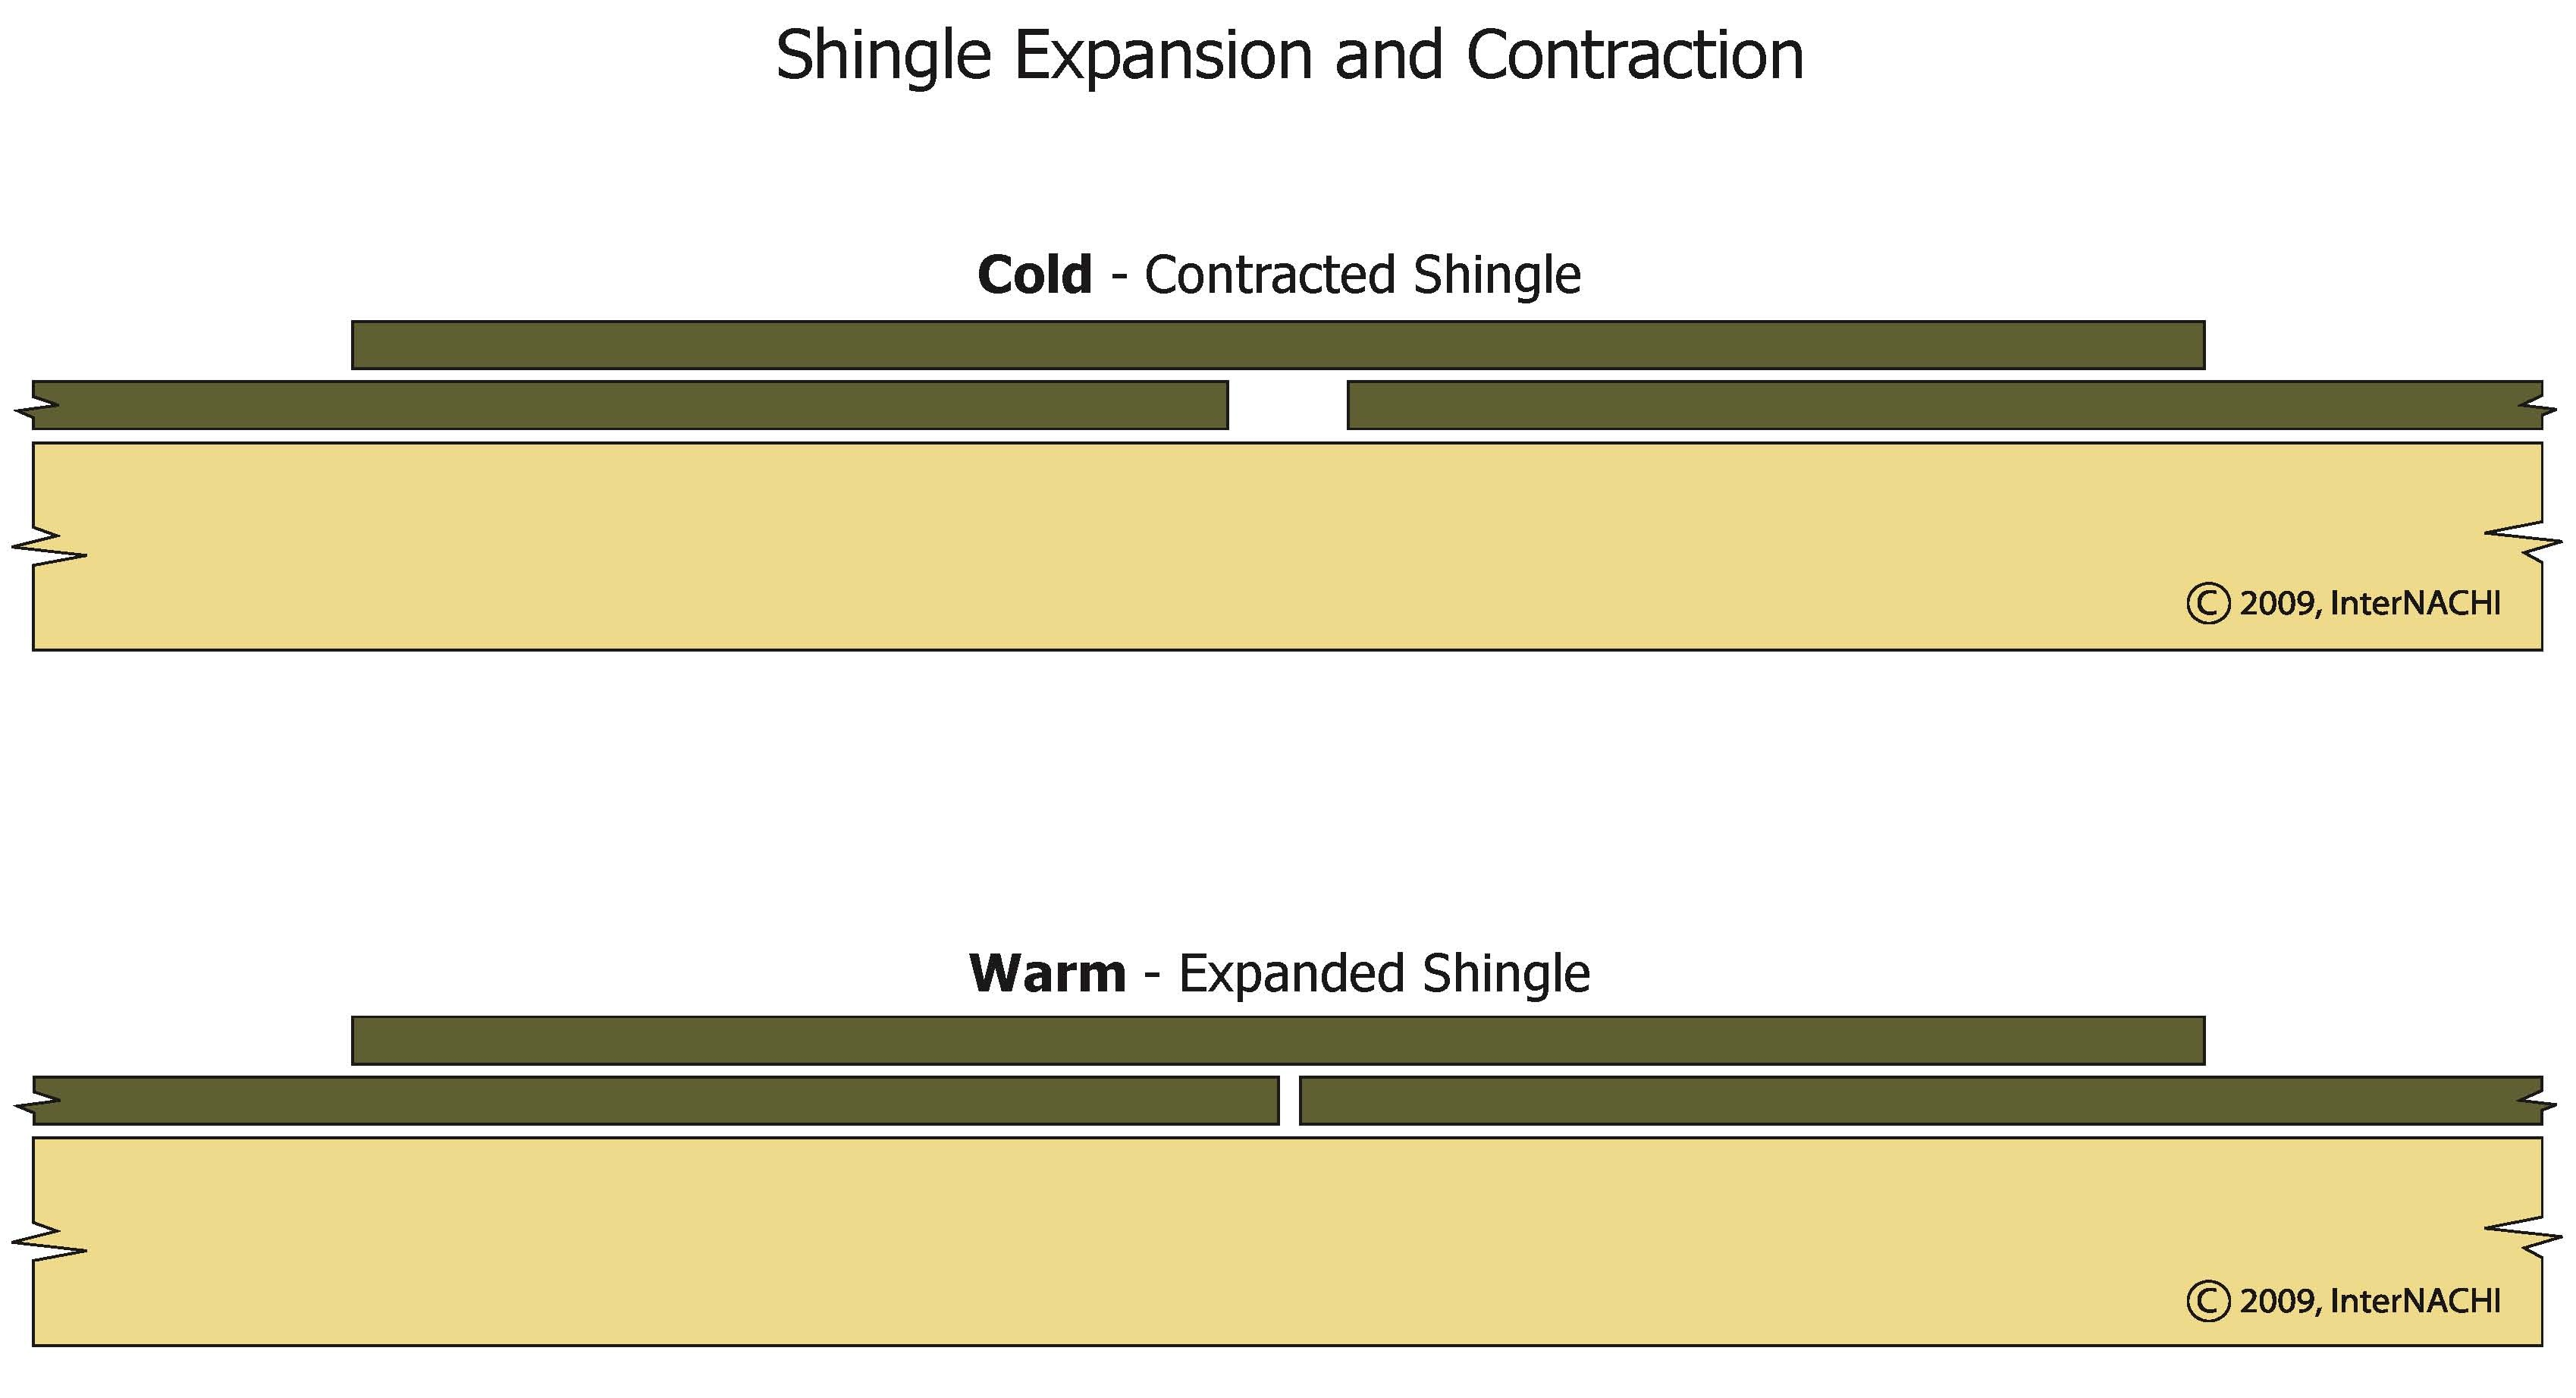 Shingle expansion and contraction.